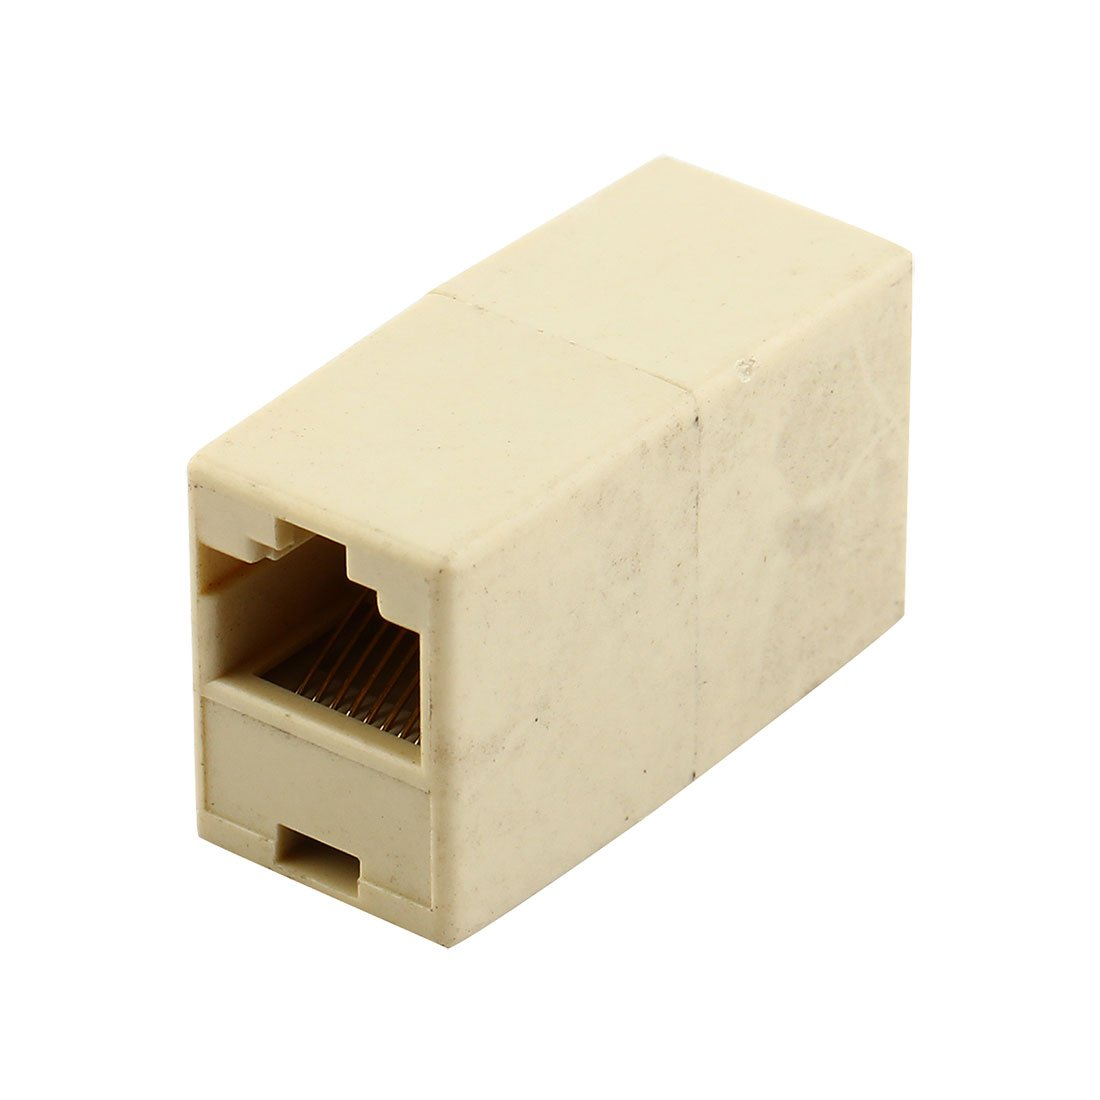 uxcell® RJ45 8P8C Female Internet Network Inline Cable Coupler Connector Adapter Beige a09021600ux0096